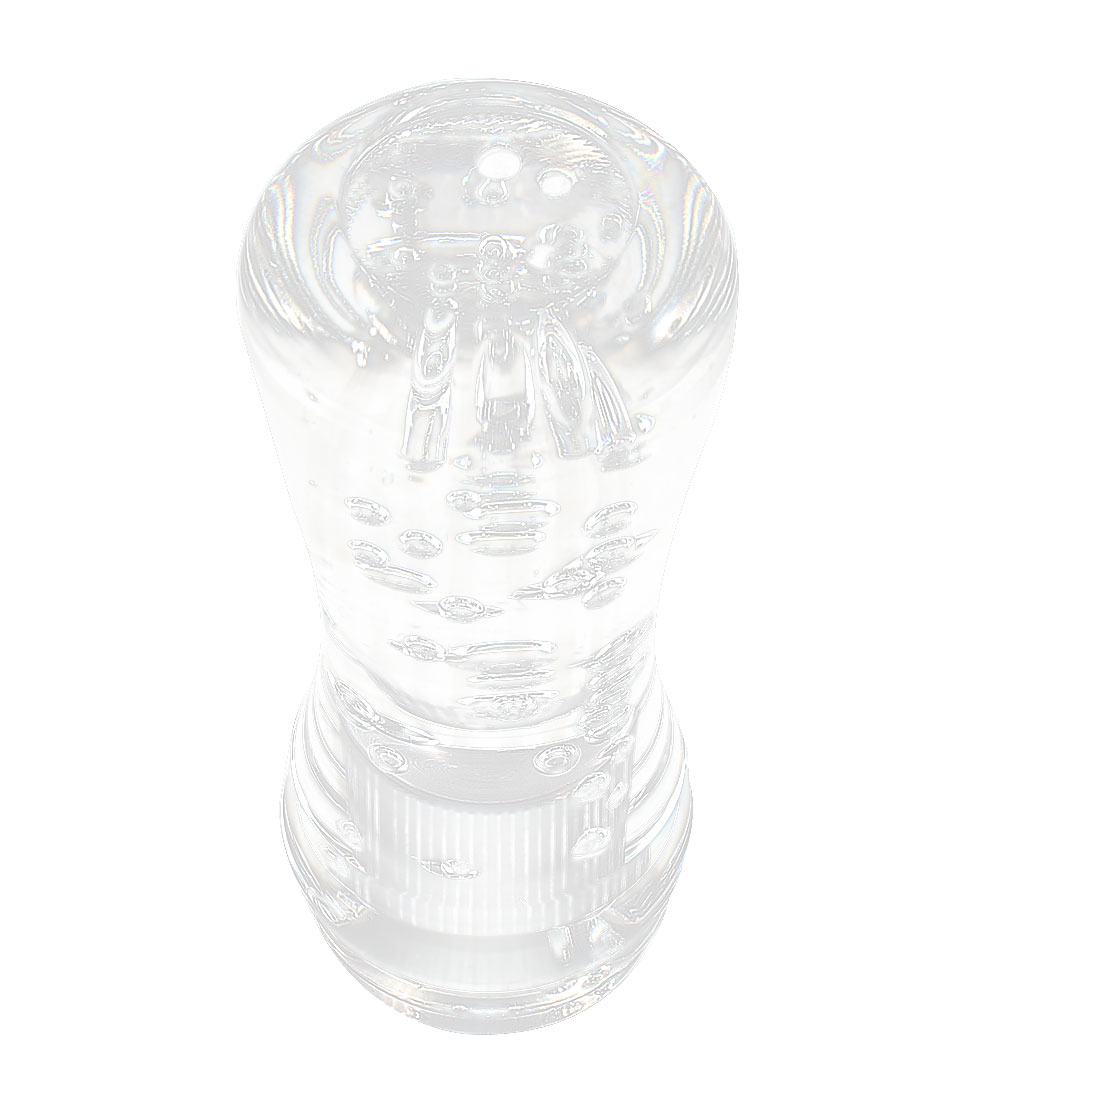 Auto Clear Bubble Screw on Manual Gear Stick Shift Knob Cover 10cm High